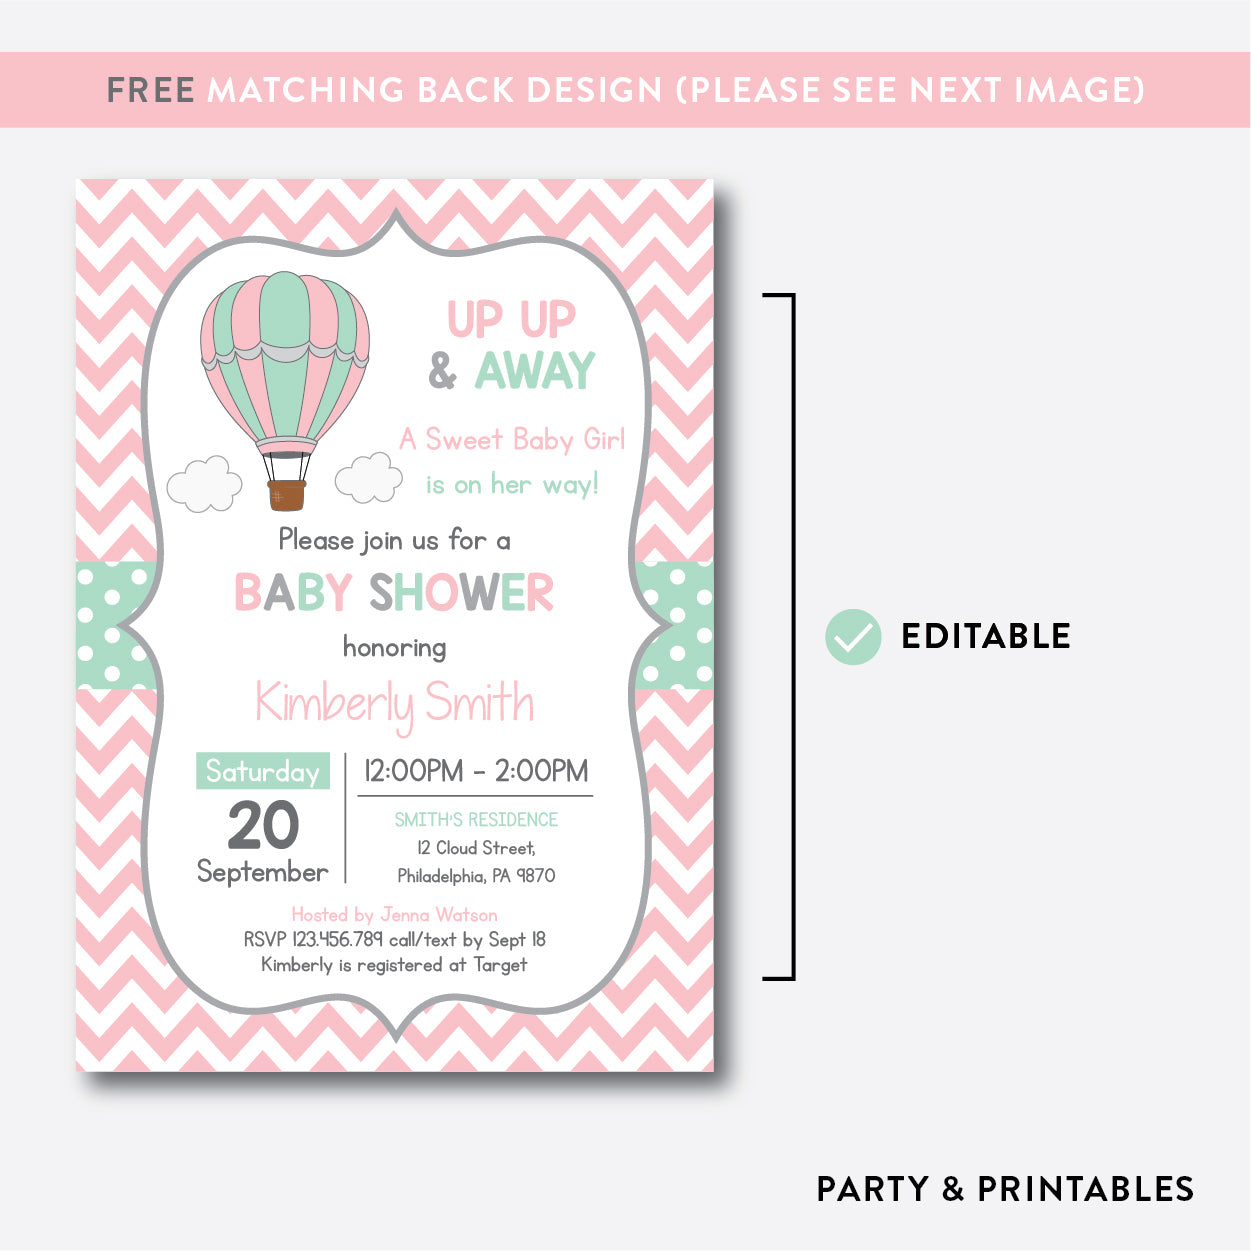 Hot Air Balloon Baby Shower Invitation / Editable / Instant Download (SBS.86), invitation - Party and Printables